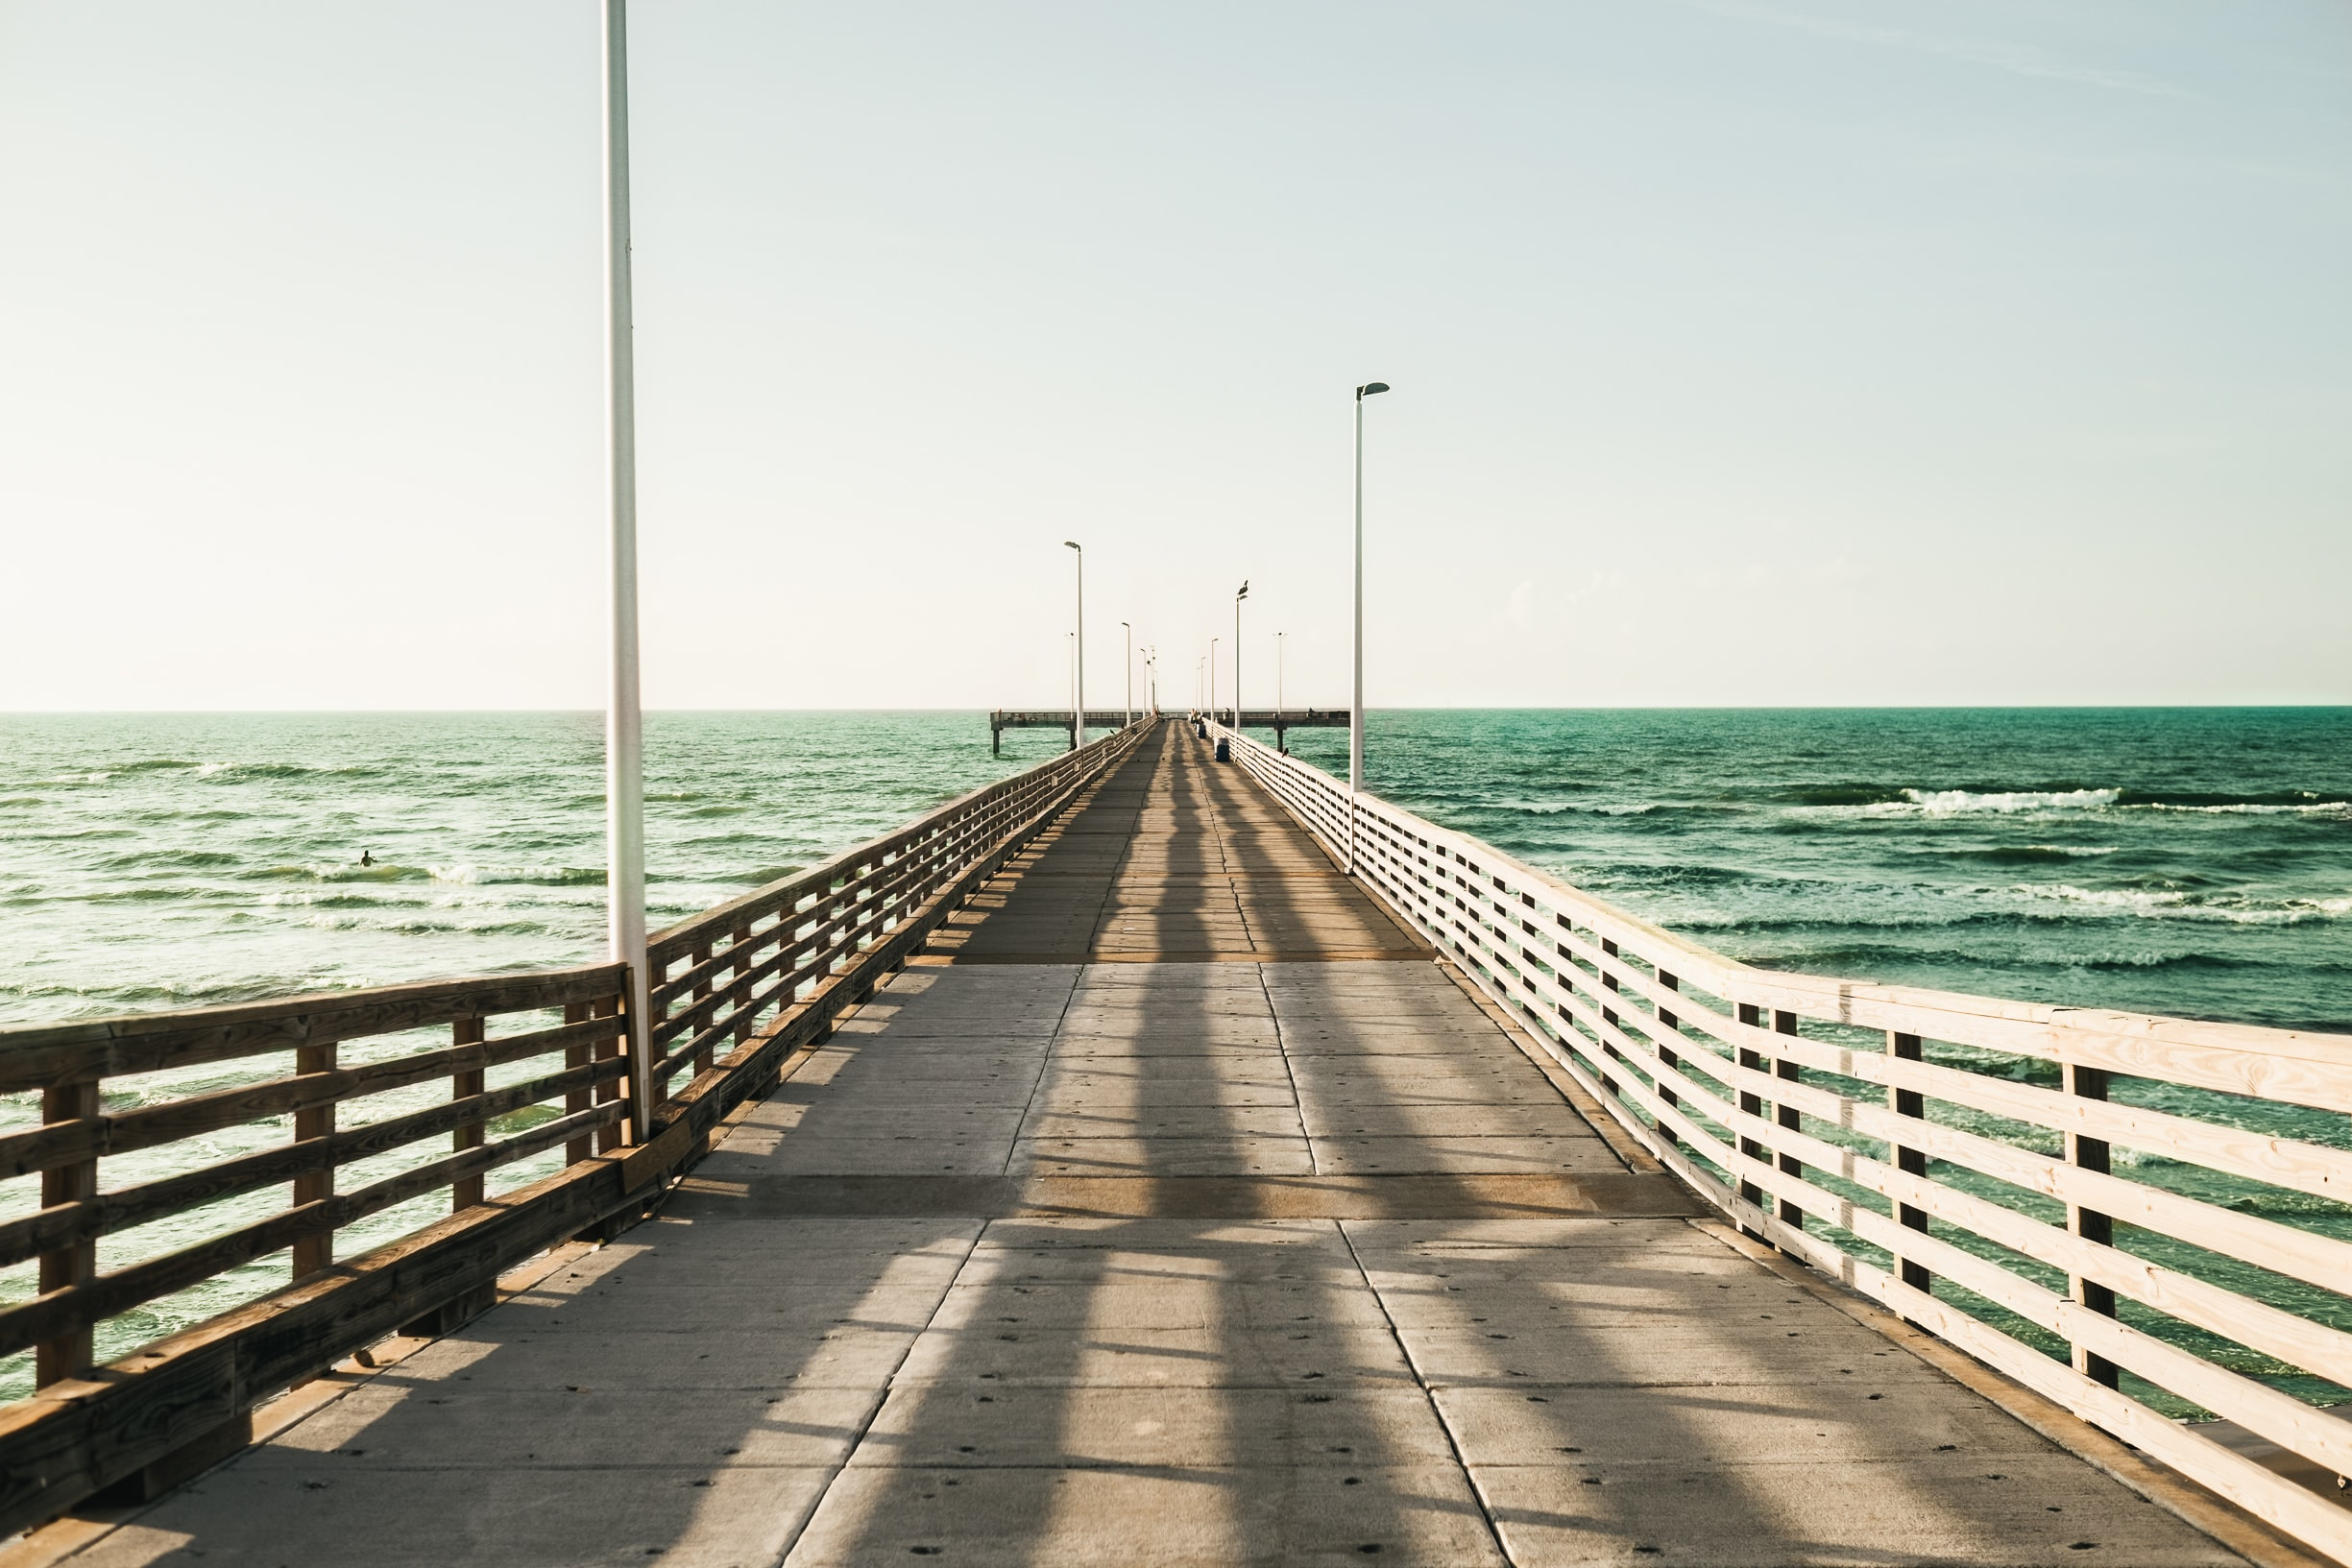 A wide wooden pier reaching out into the sea